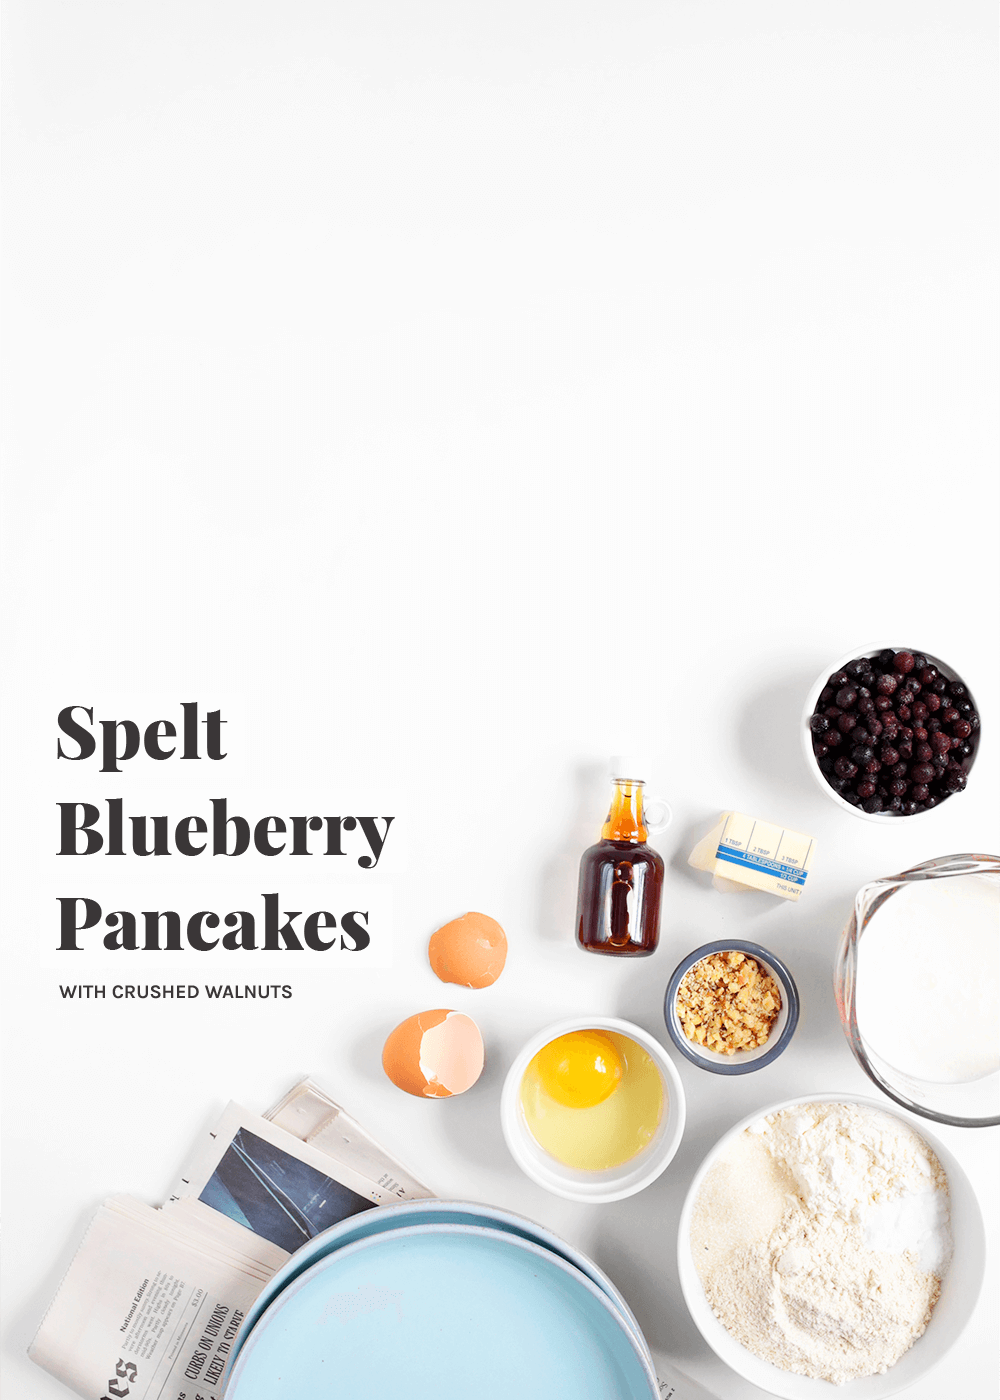 Spelt Blueberry Pancakes with walnuts from The Faux Martha